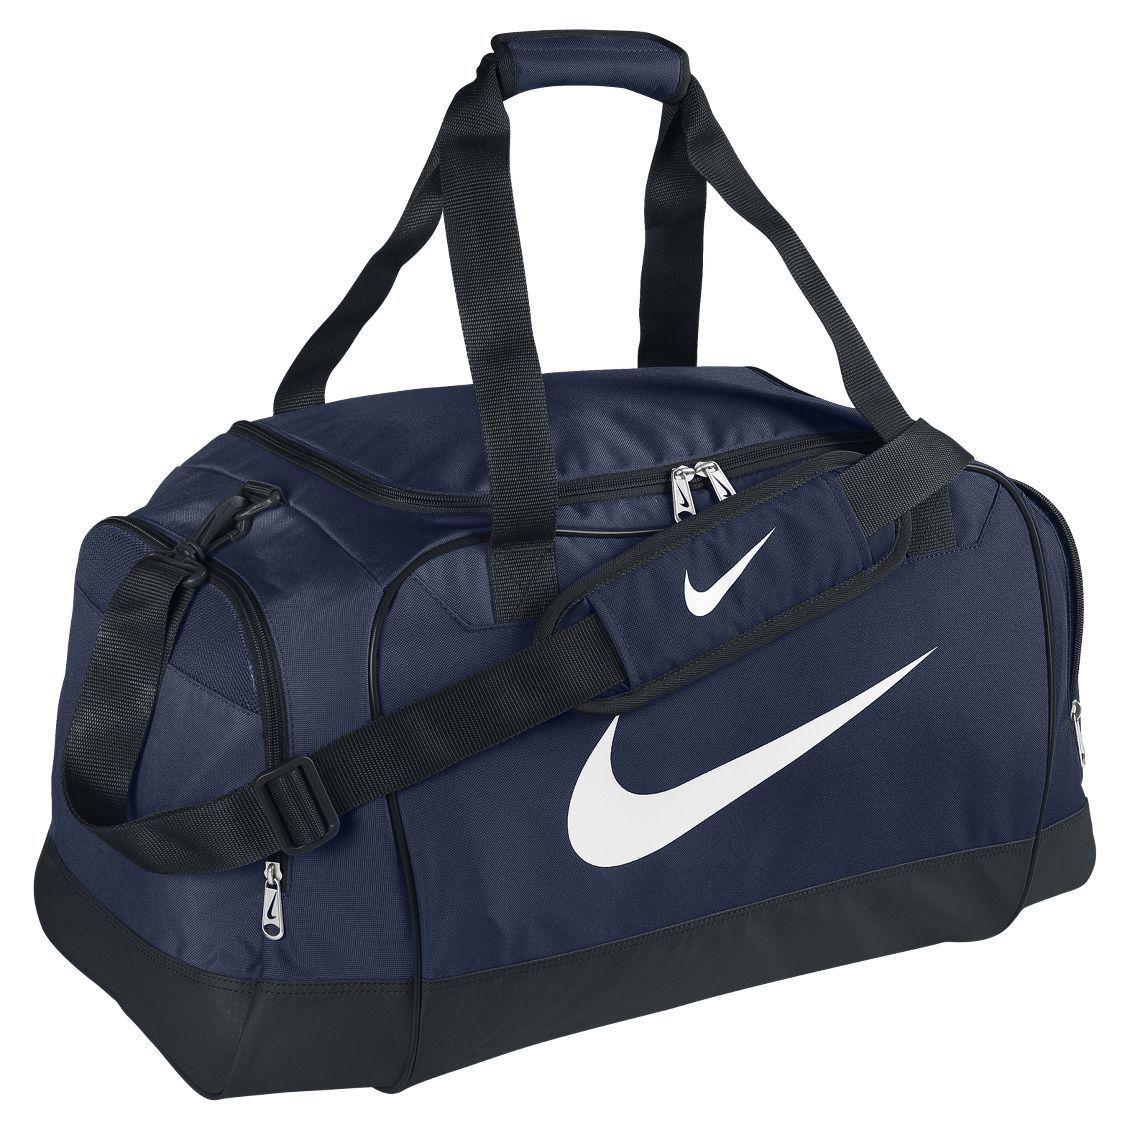 Nike Bag Club Team Medium Duffel Personal equipment bag Navy White Soccer  Football Gym Basketball Tennis Duffle Bags NEW BA3251-472 4e0c300207d1